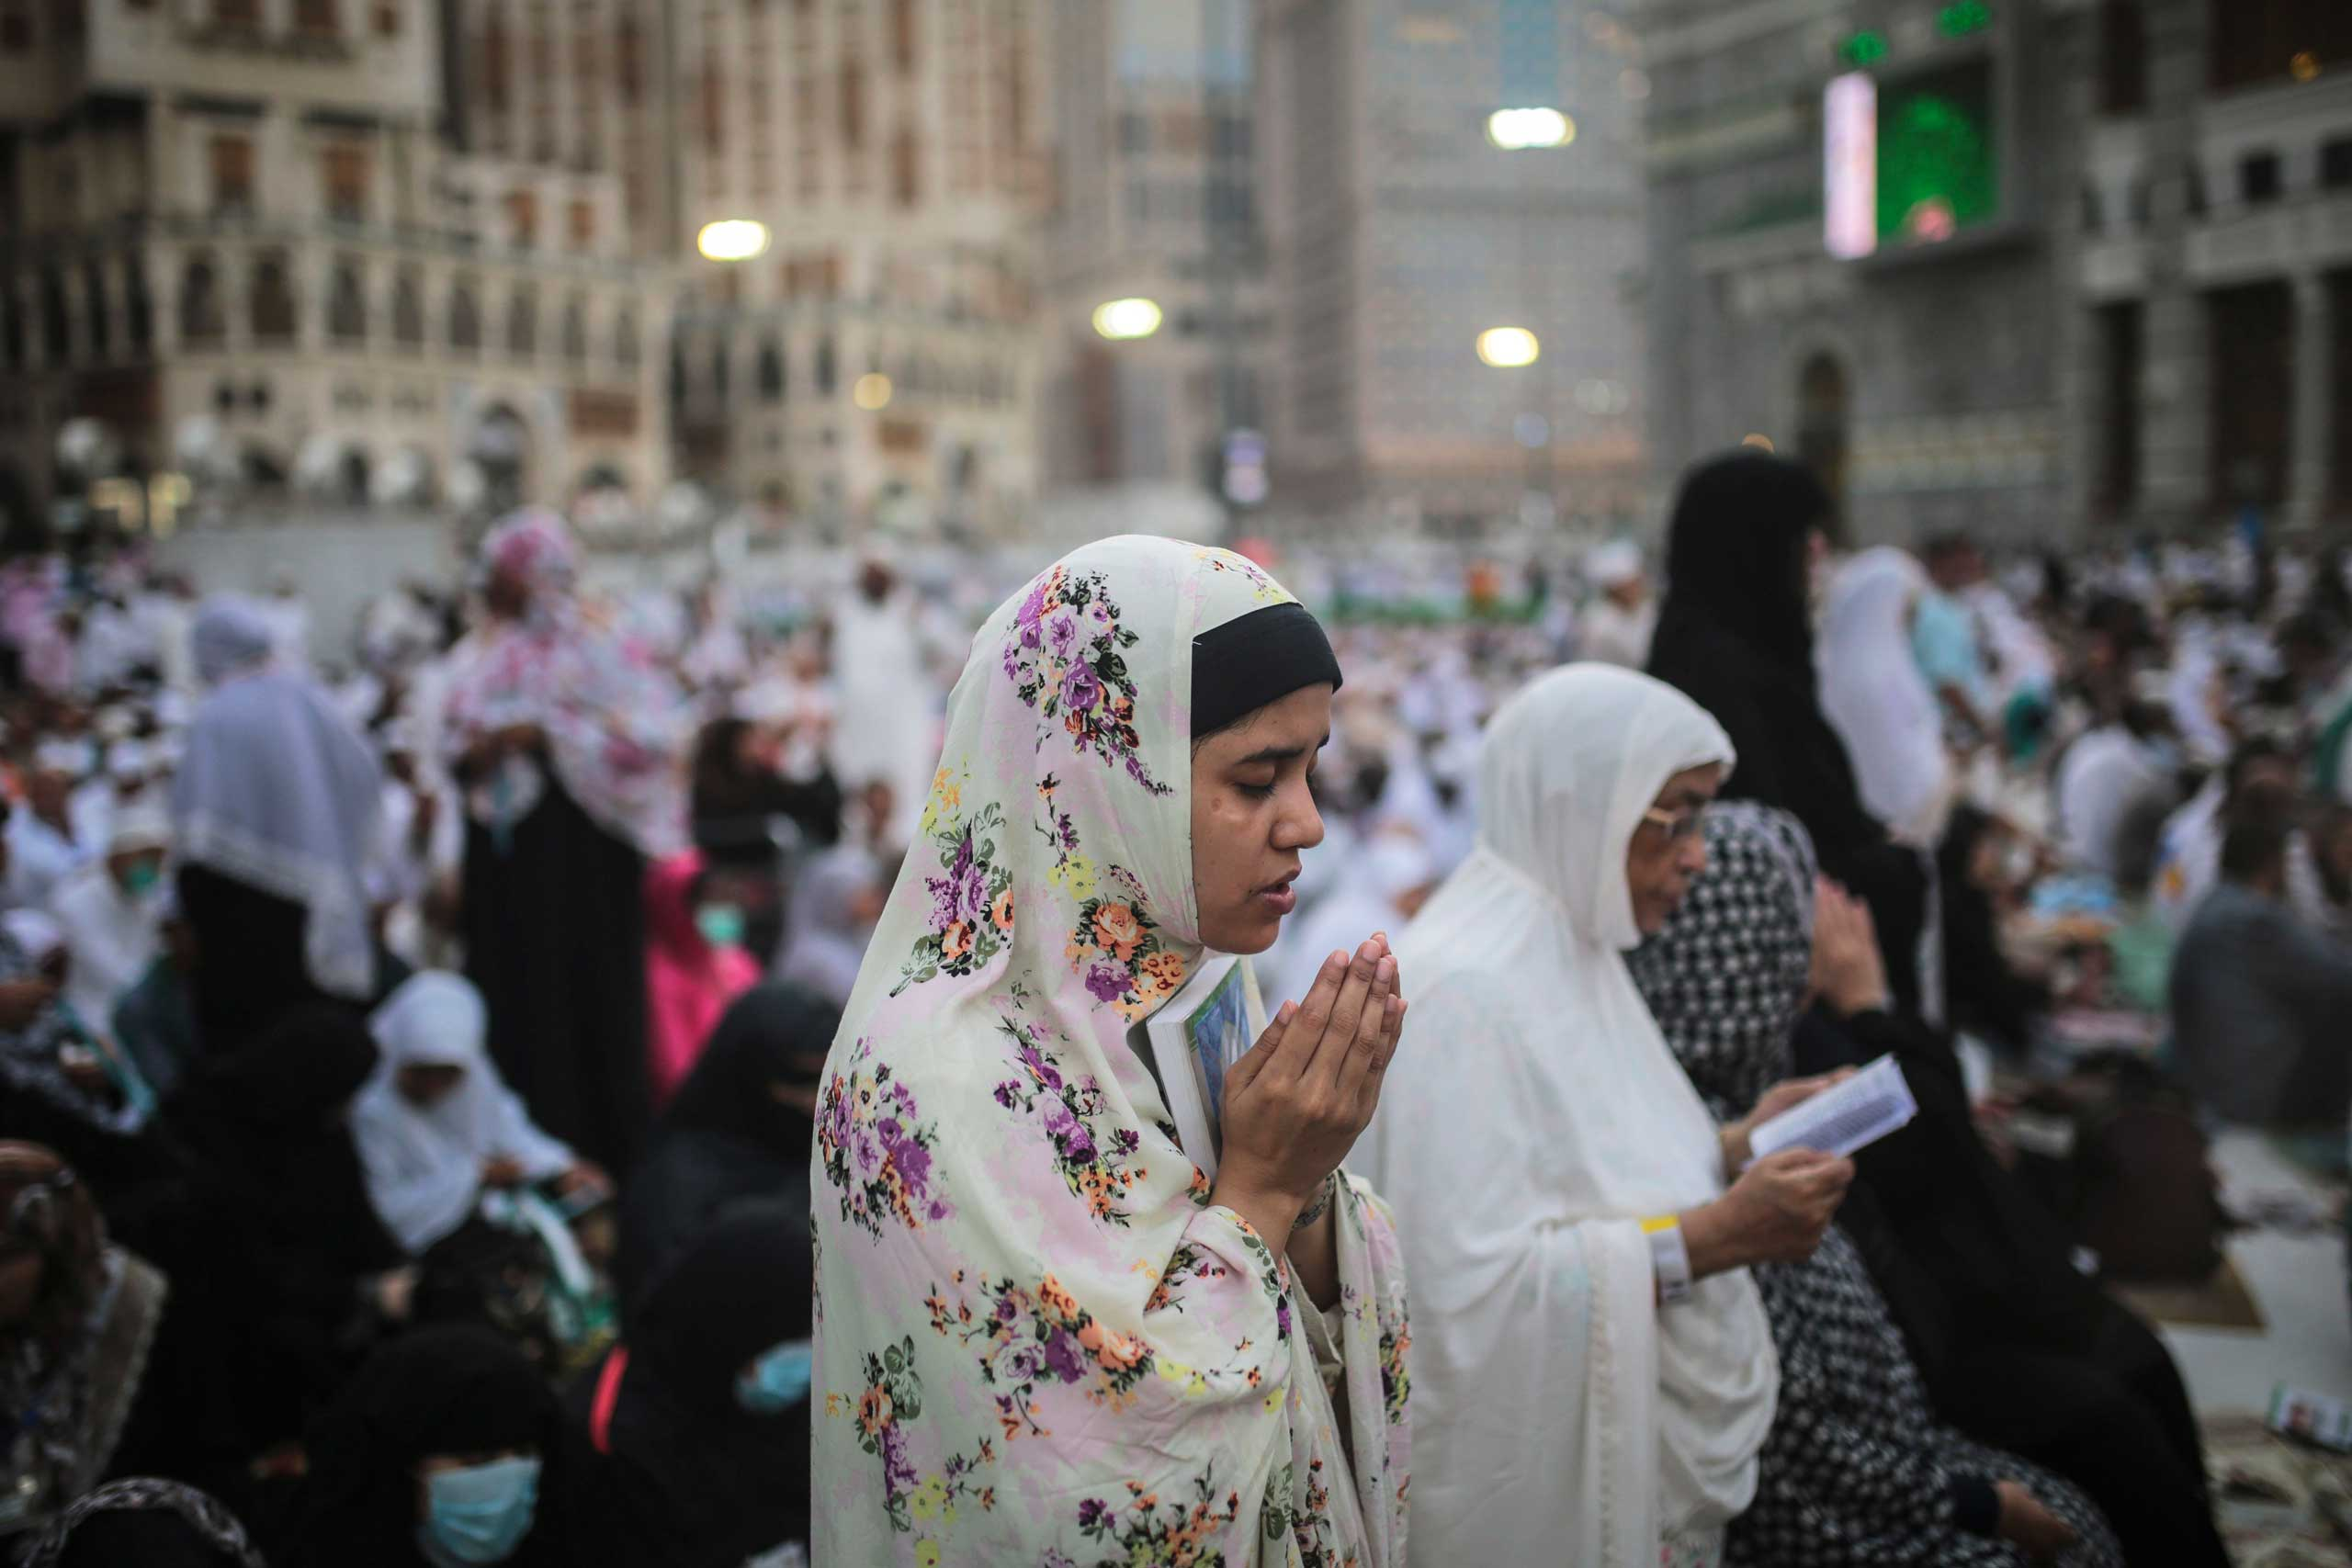 A Muslim Pilgrim prays outside the Grand Mosque in the holy city of Mecca, on Sept. 20, 2015.